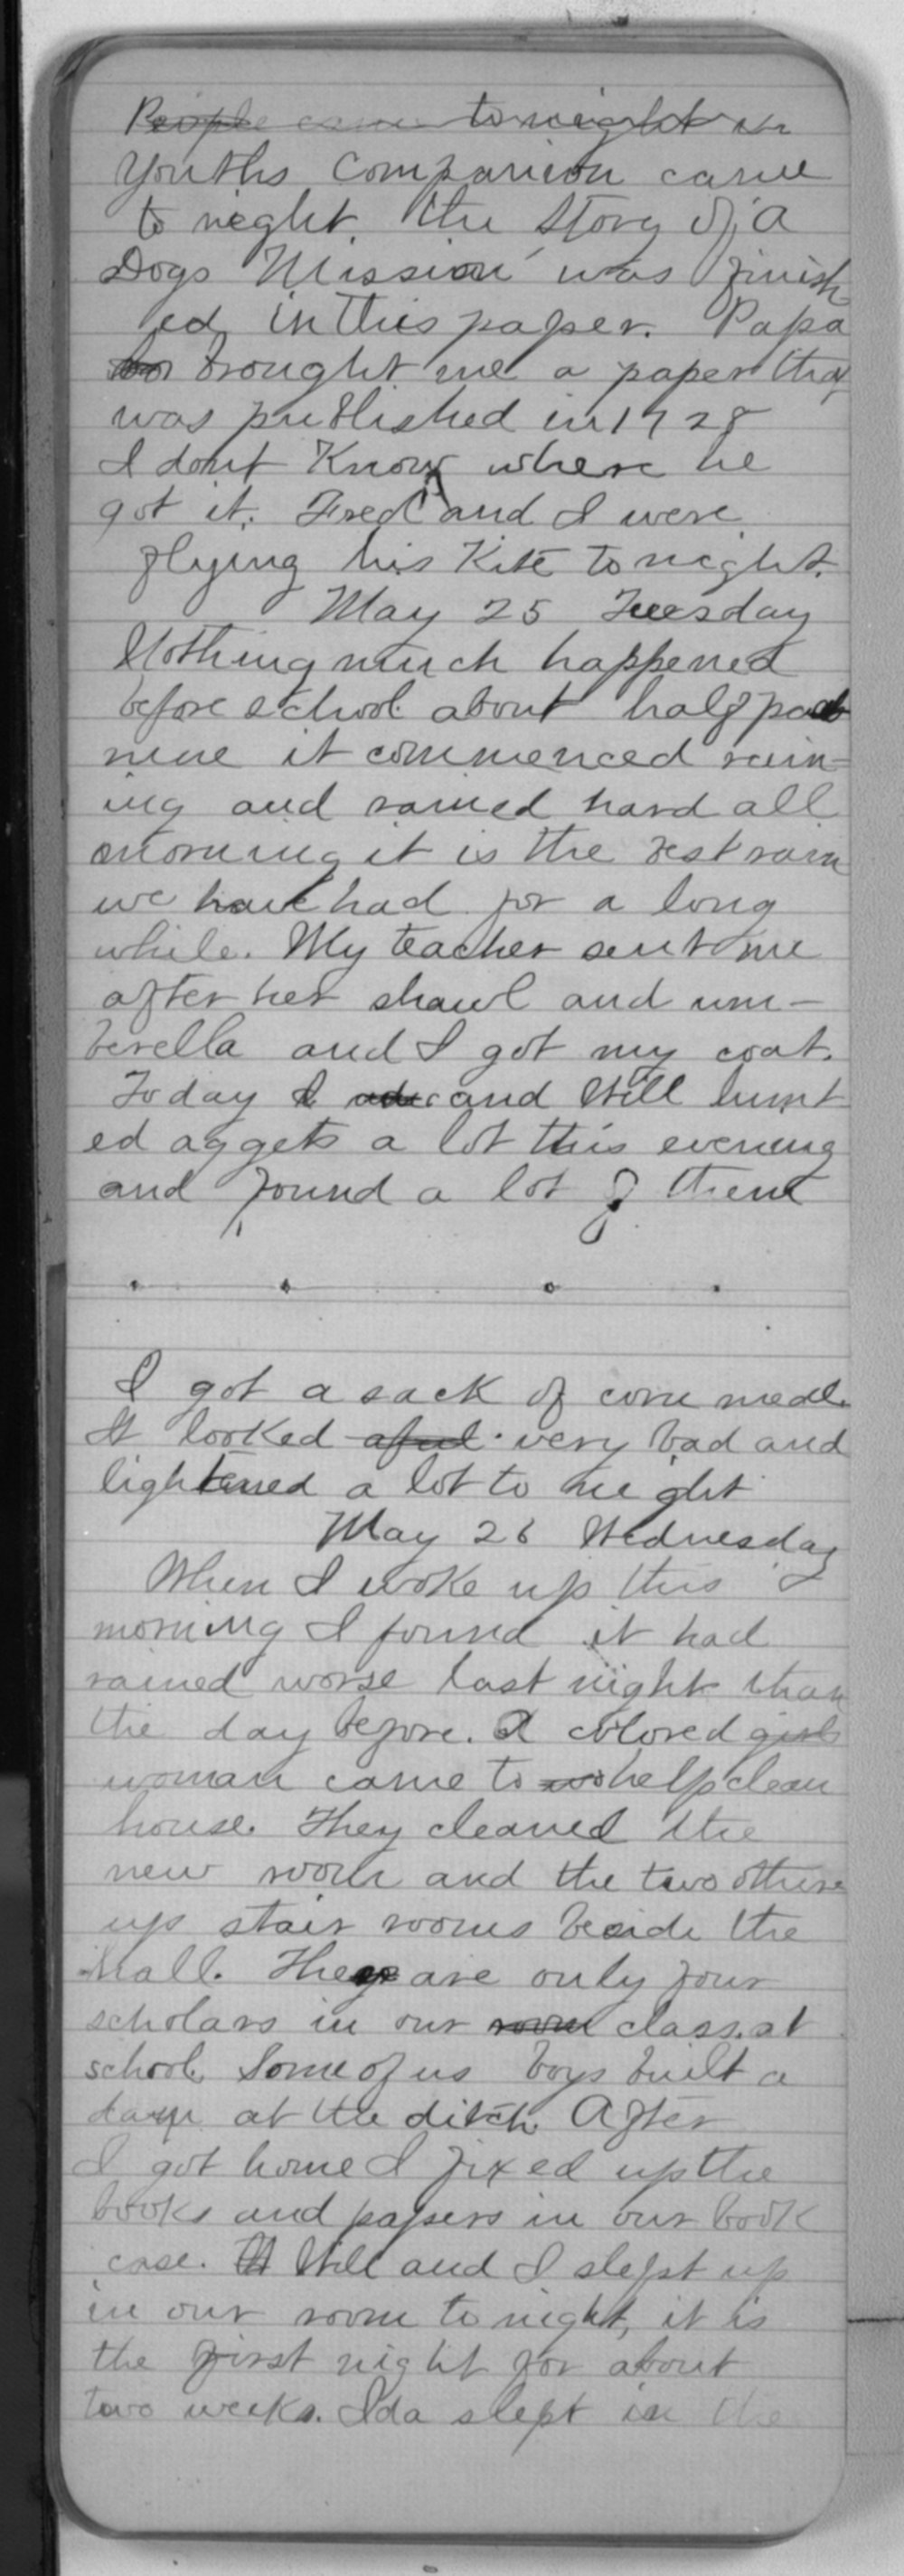 "Edward S. (""Ned"") Beck diaries - May 25, 1880"